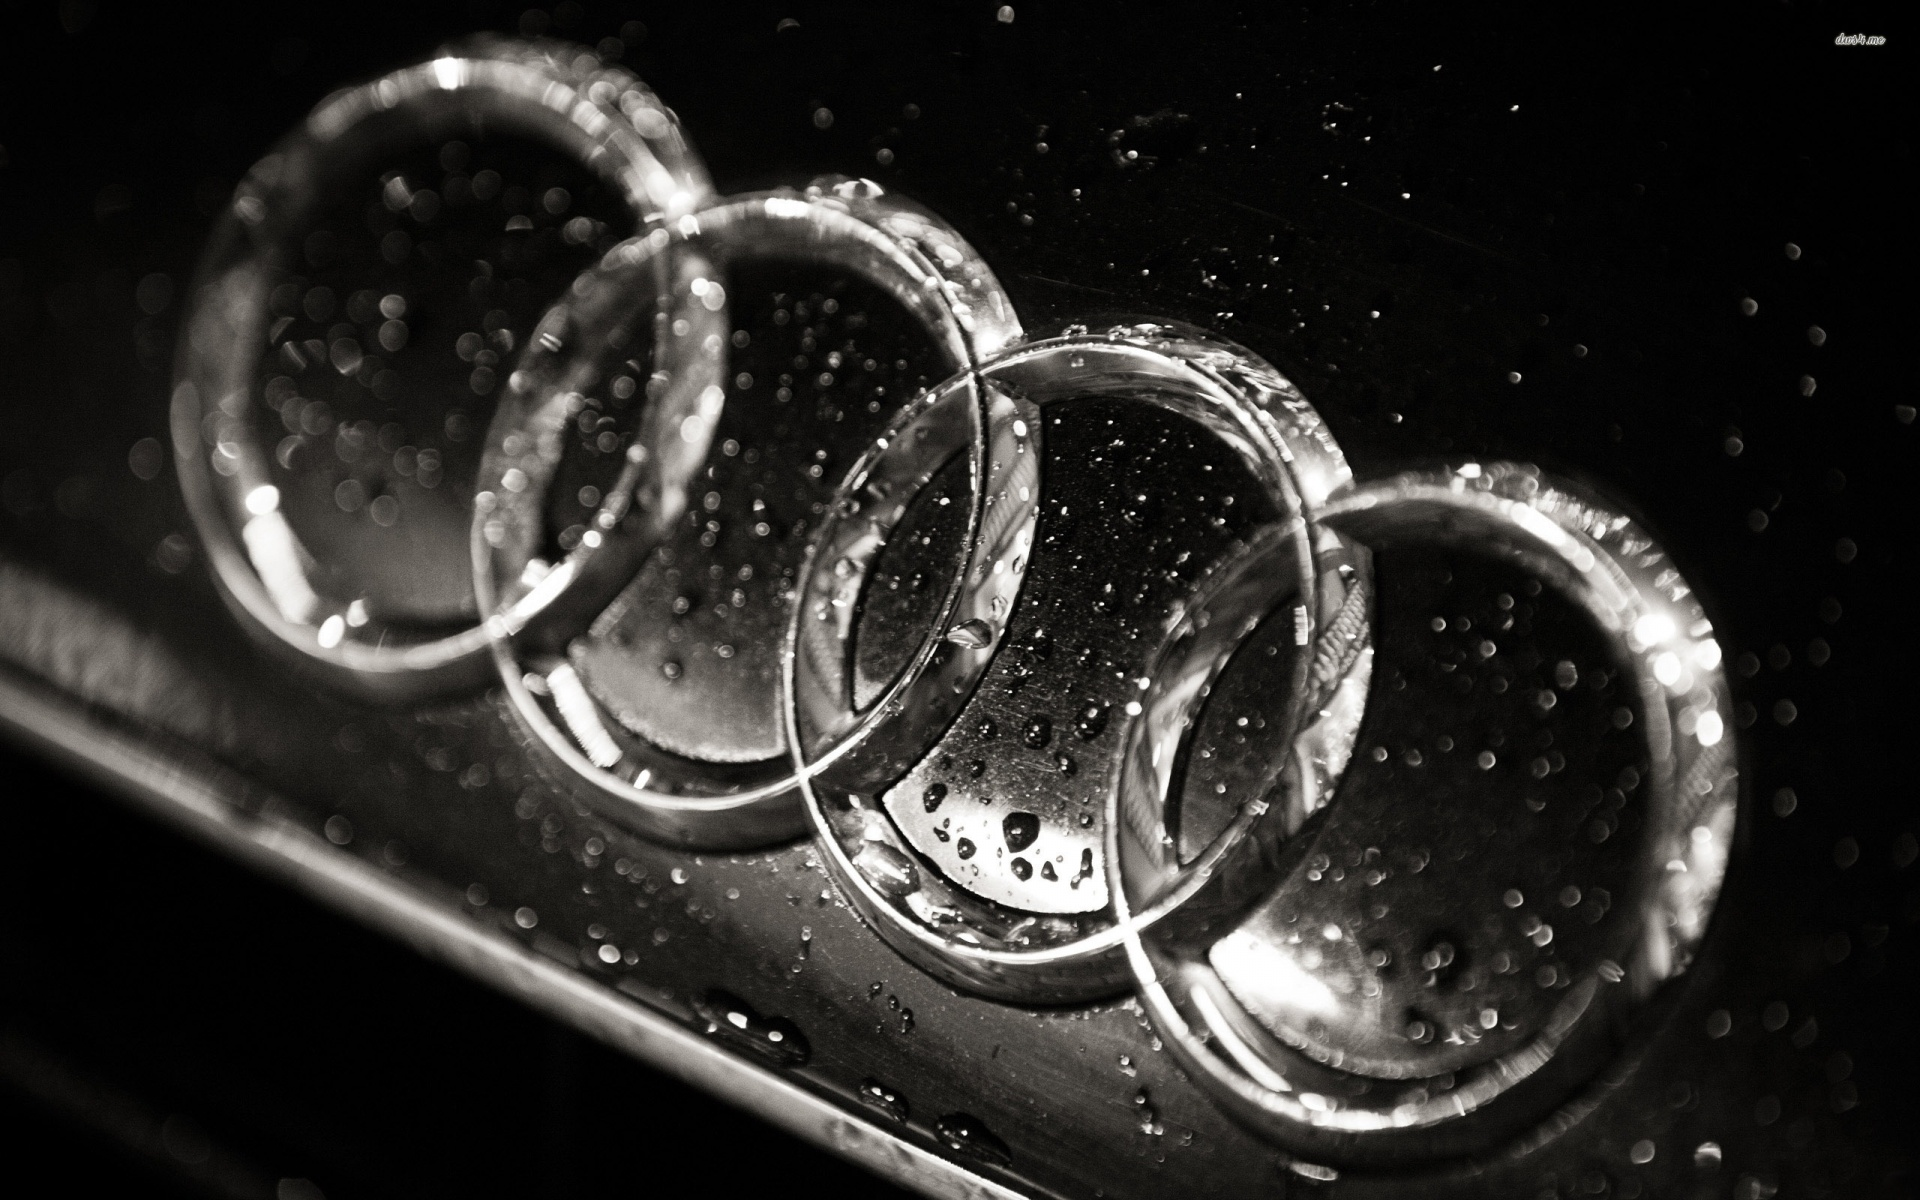 1920x1200 Wet Audi logo, cars